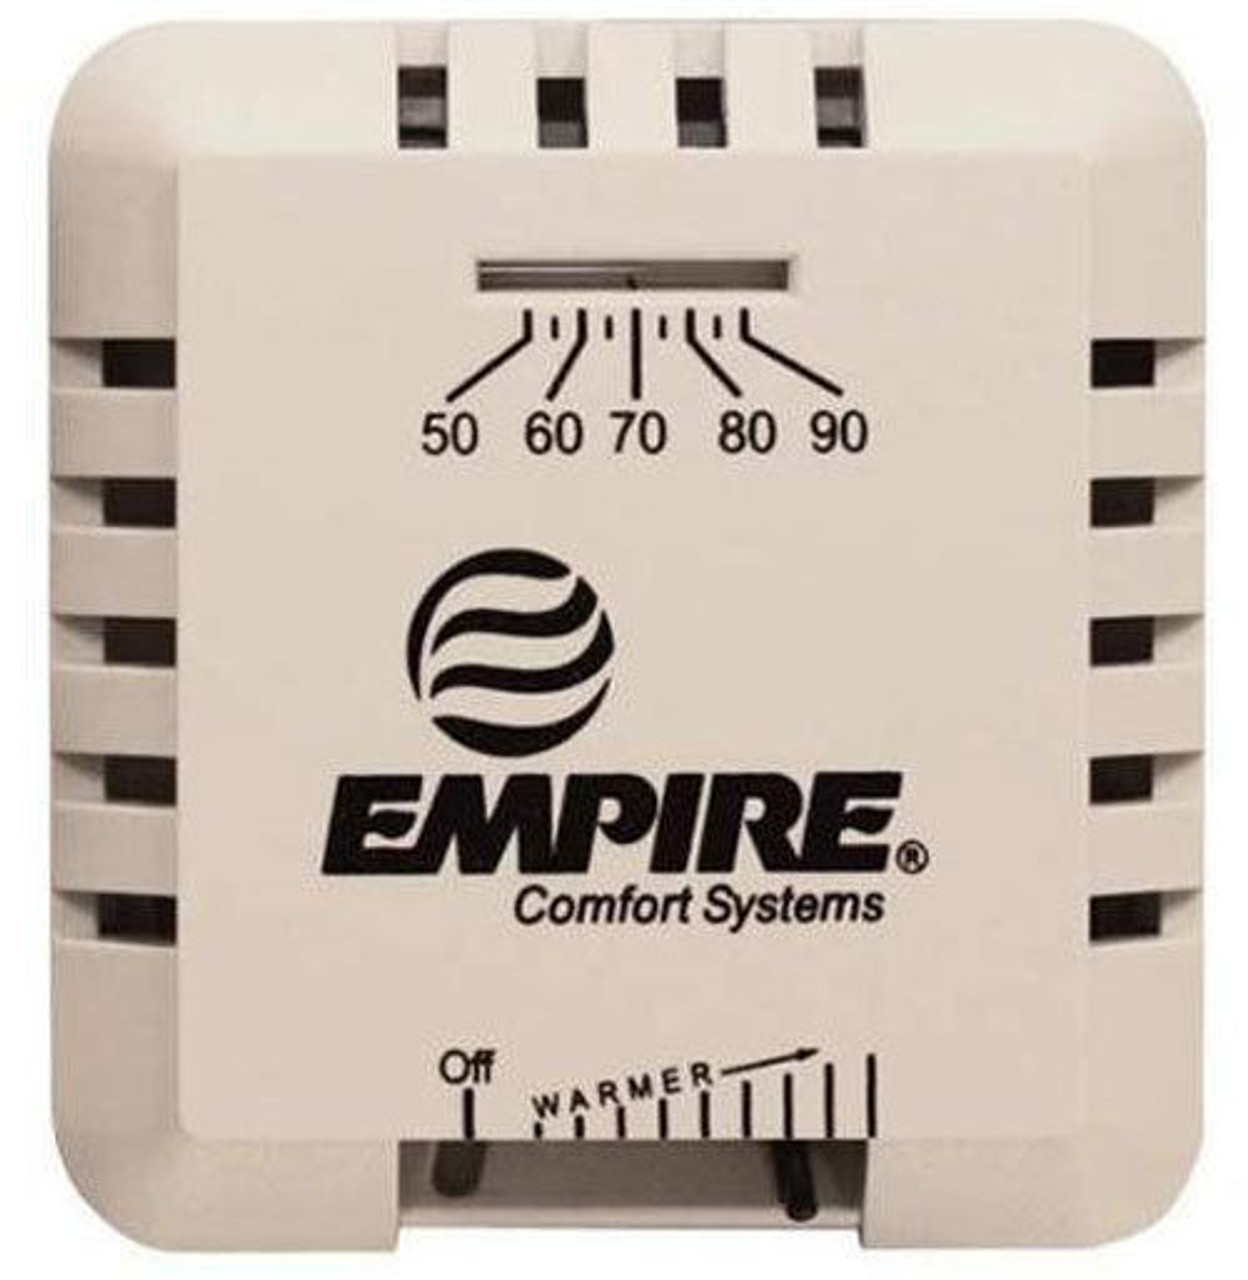 Empire wall mounted thermostat